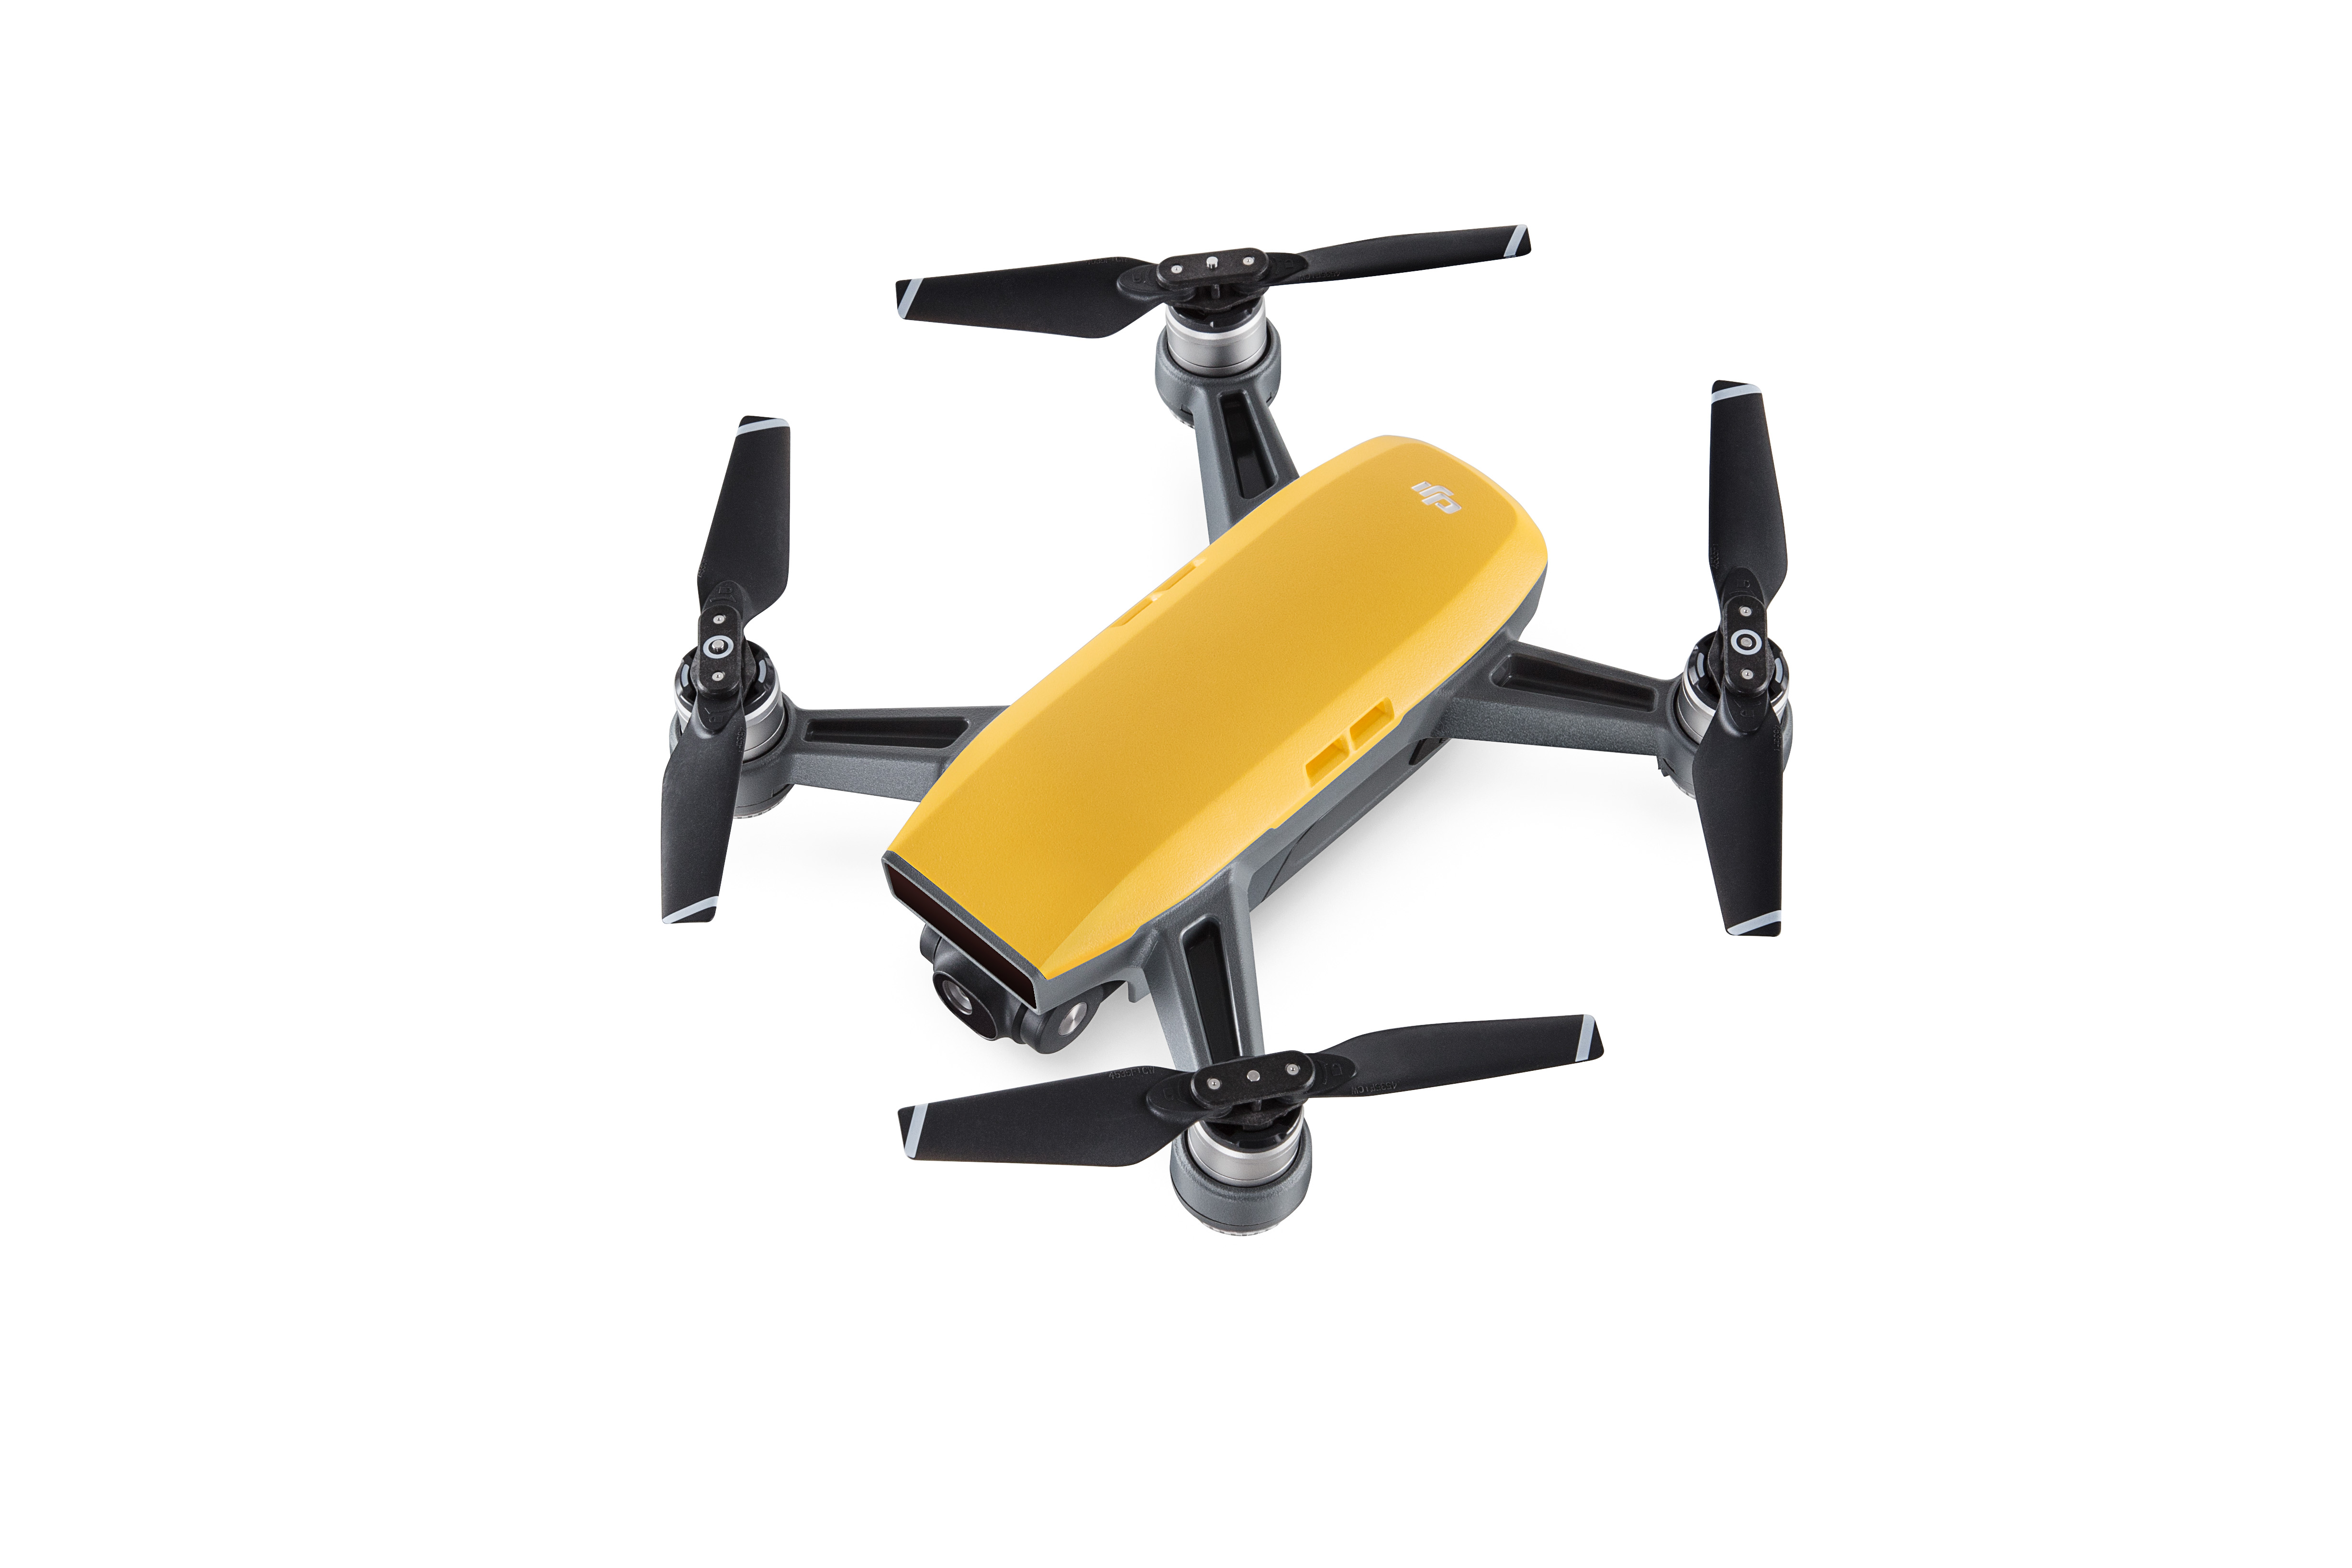 dji spark in sunrise yellow